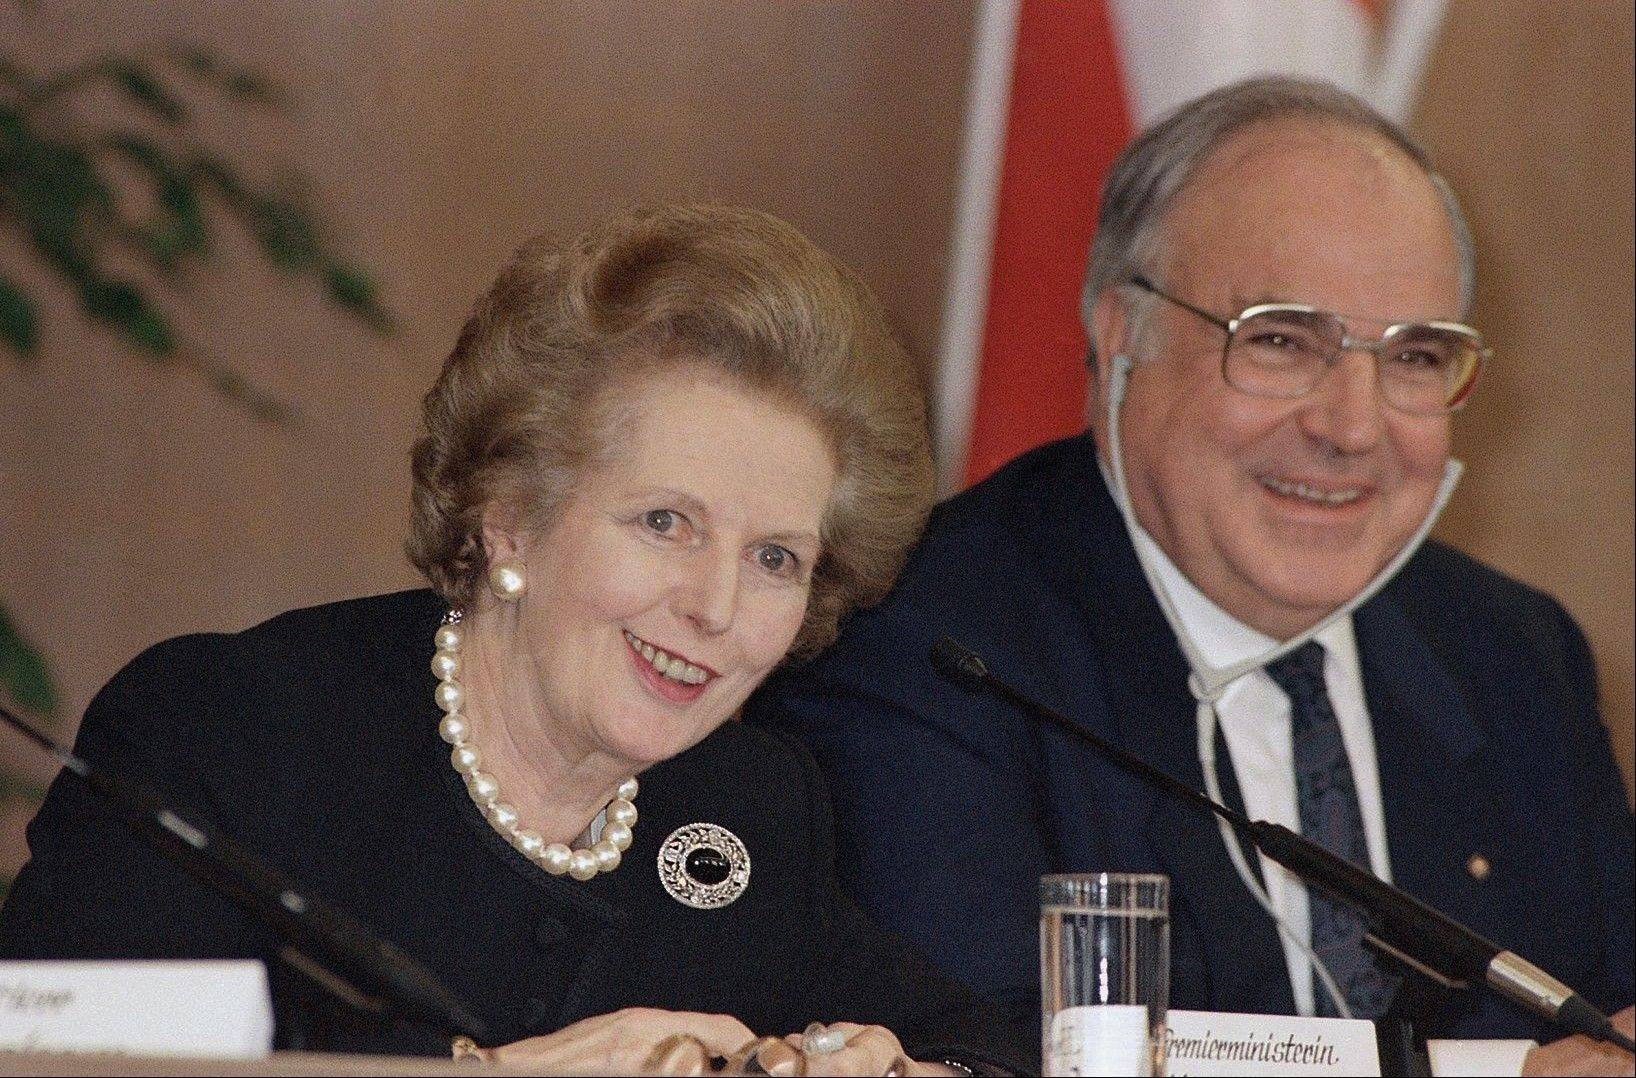 This is a Tuesday, Feb. 21, 1989 file photo of British Prime Minister Margaret Thatcher and West German Chancellor Helmut Kohl during a news conference in the Frankfurt City Hall in Frankfurt Germany. Former British Prime Minister Margaret Thatcher, whose conservative ideas made an enduring impact on Britain, died Monday April 8, 2013. She was 87.